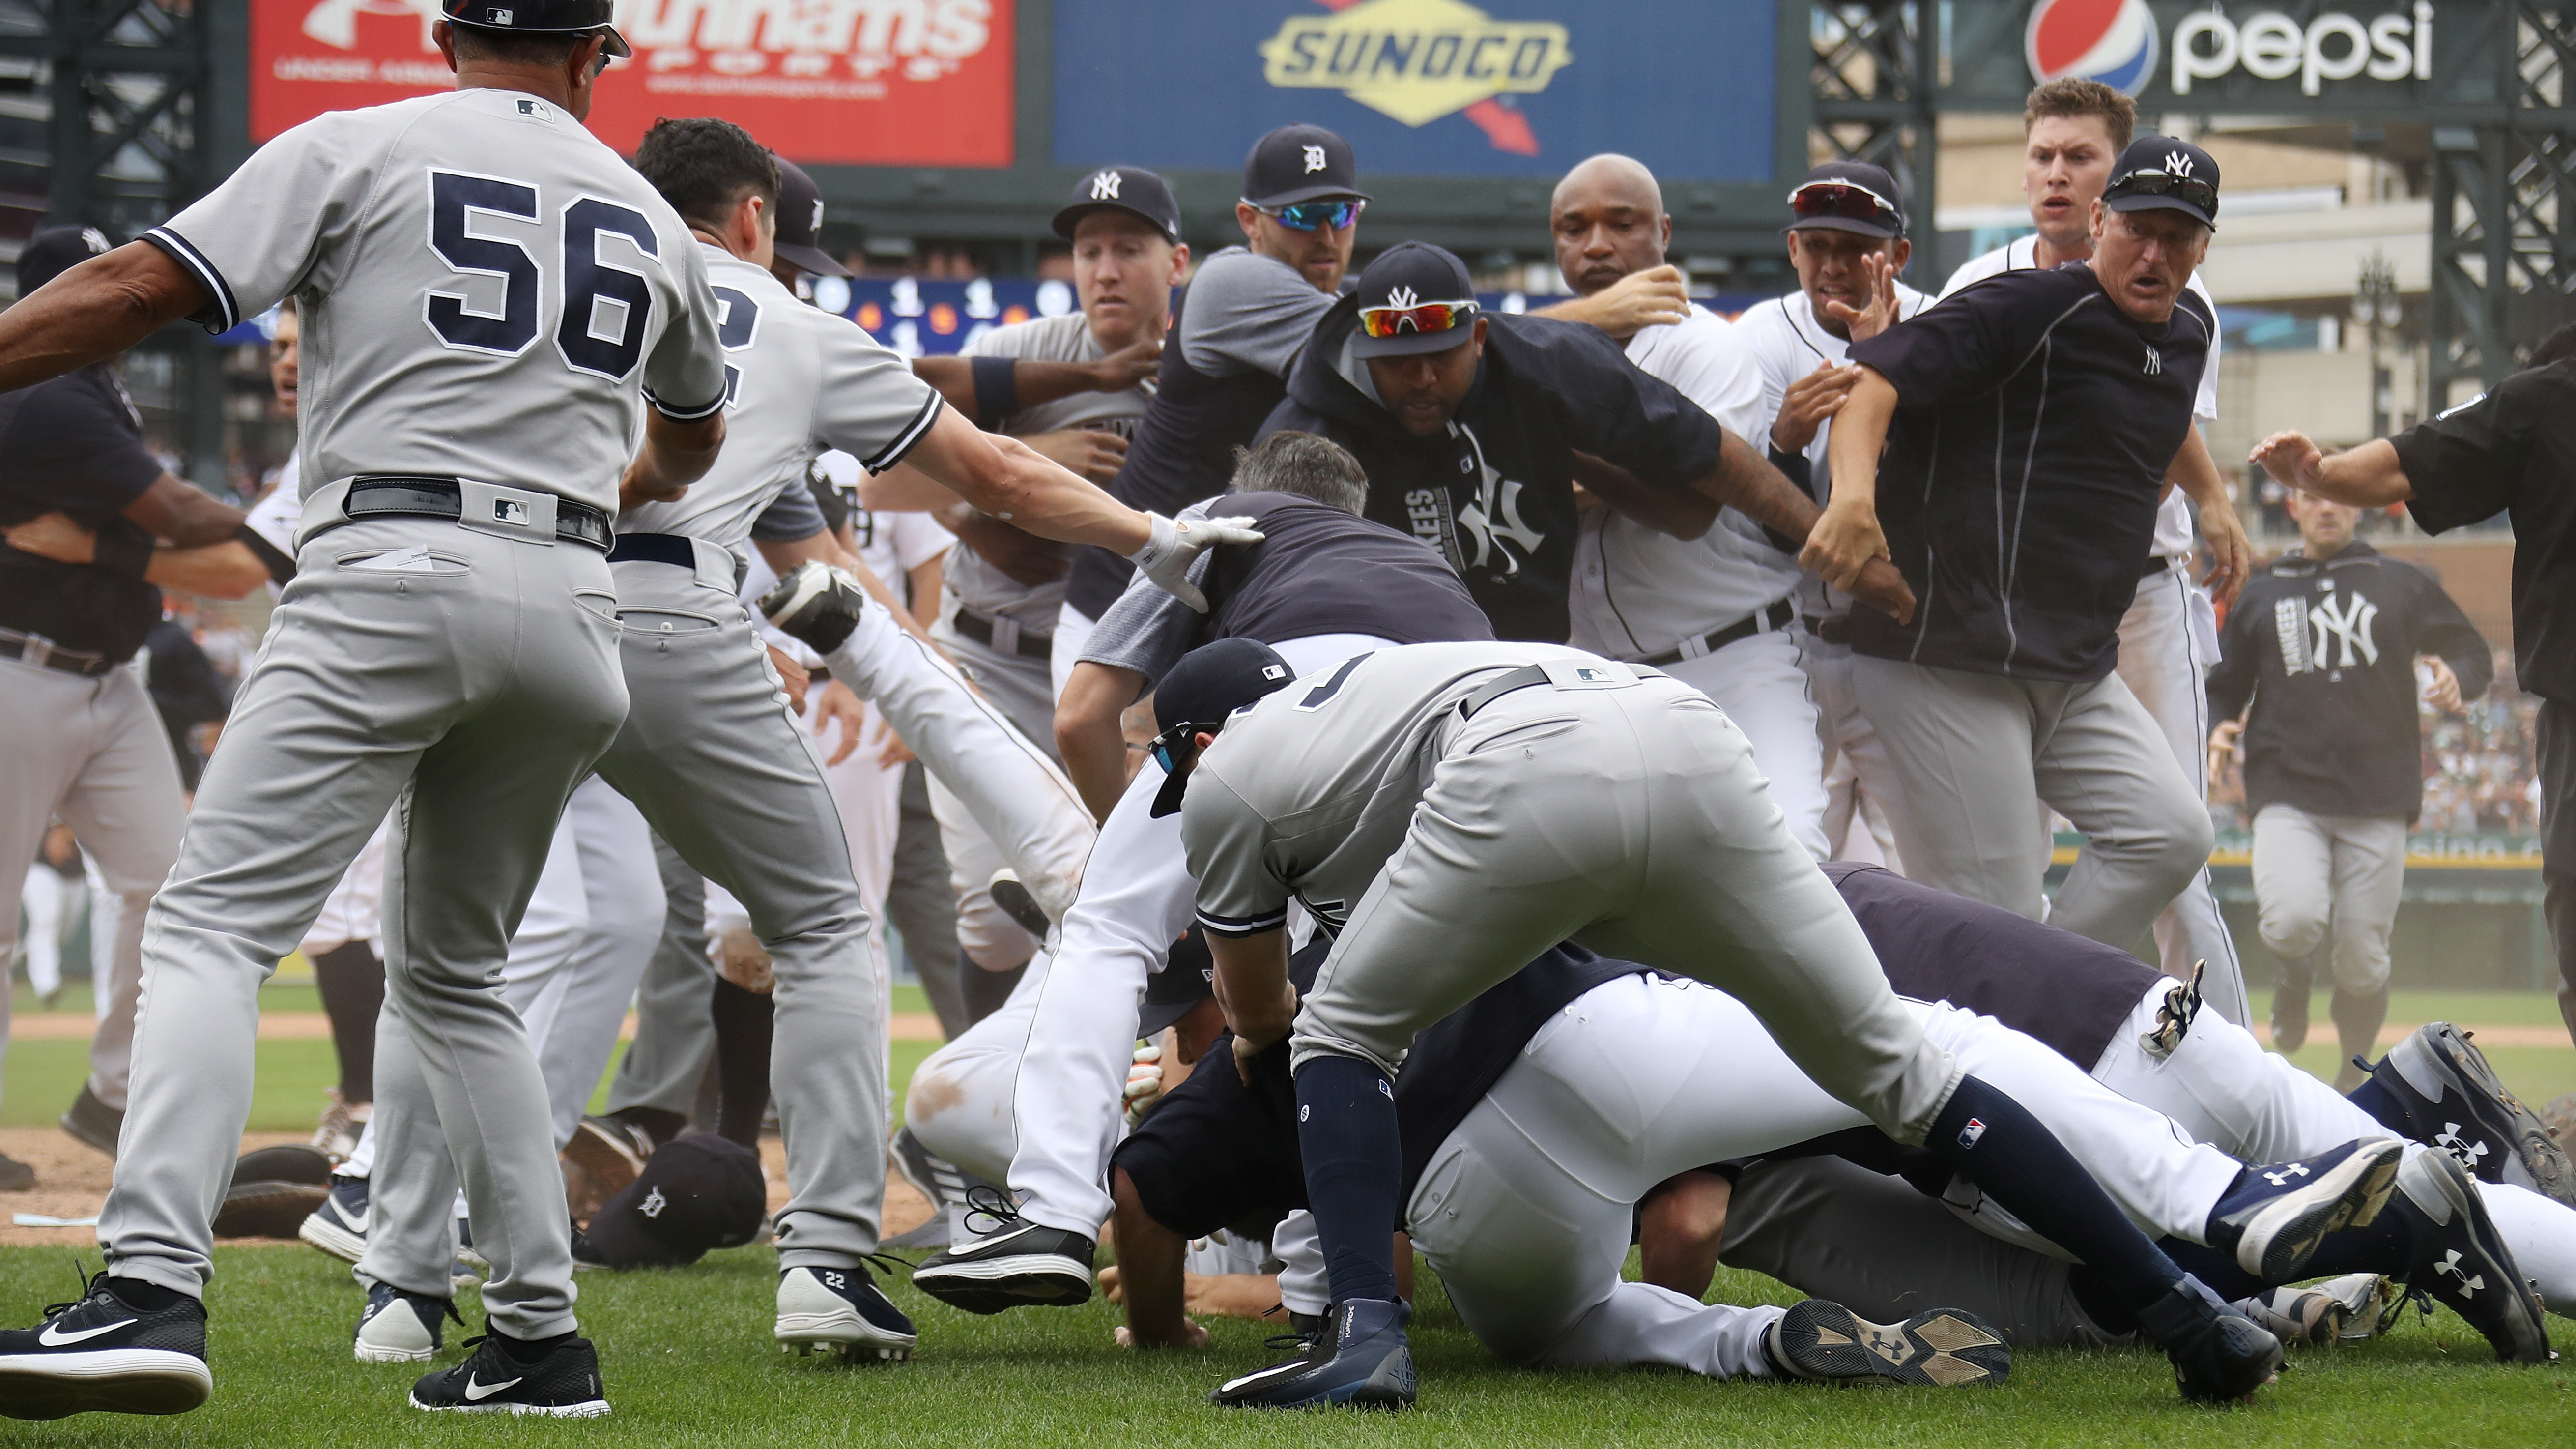 Yankees involved in three benches-clearing brawls